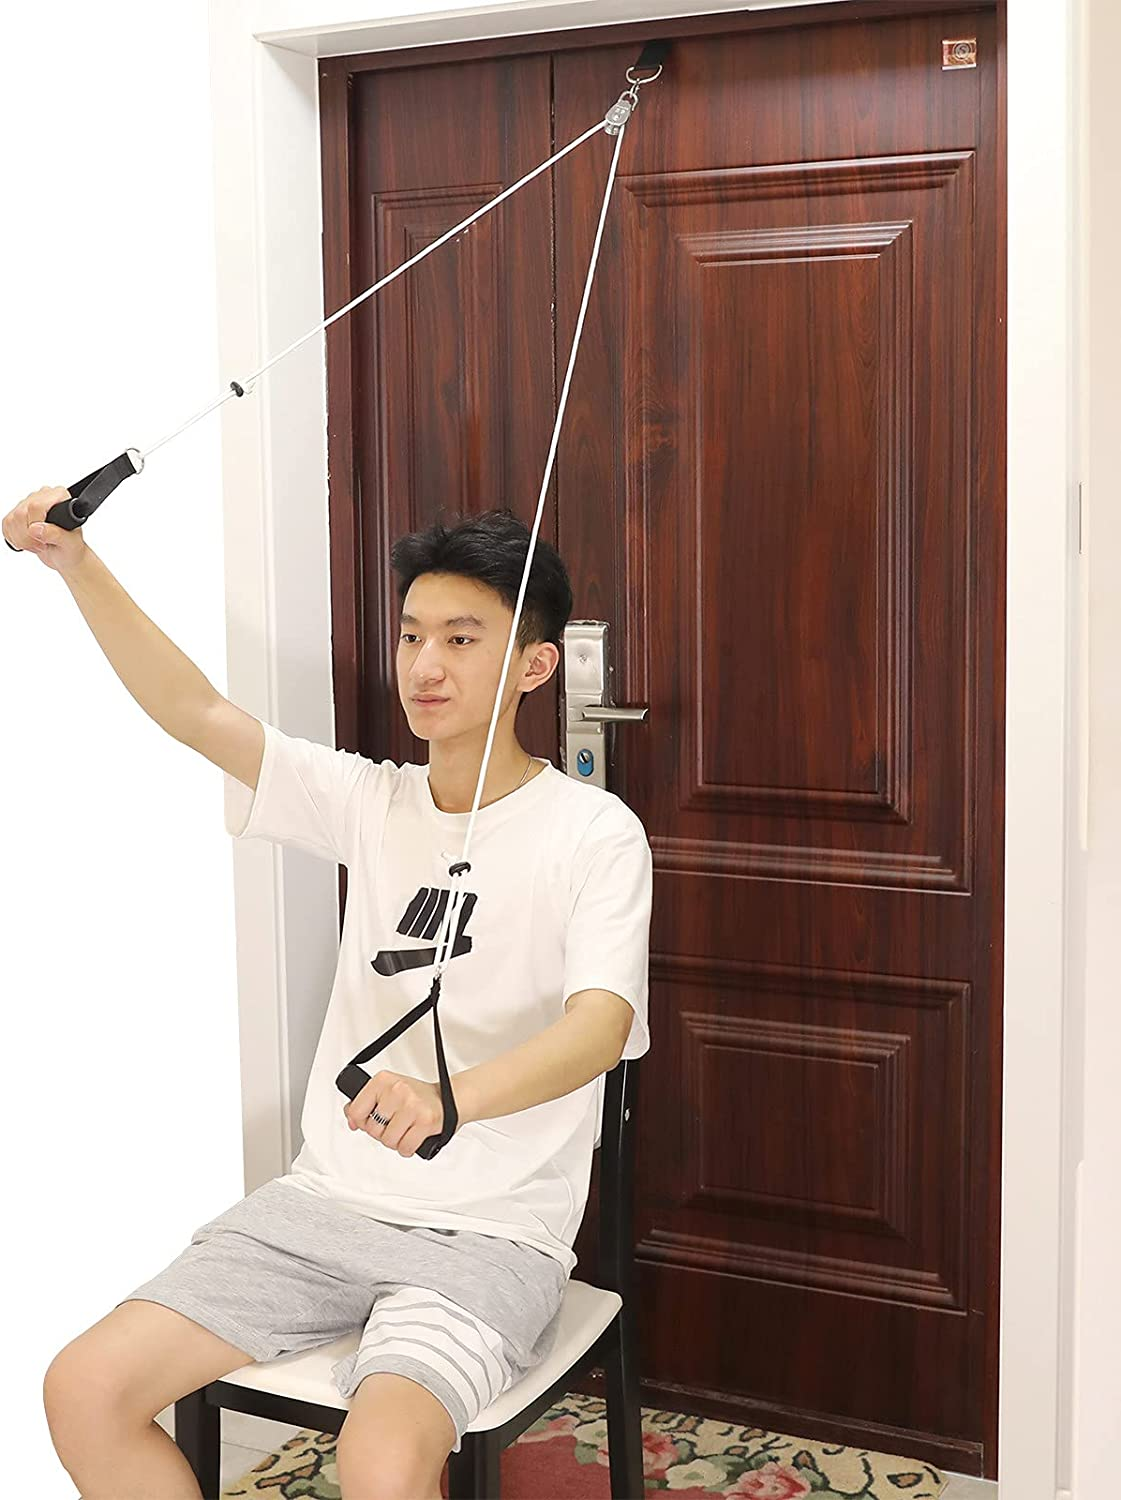 Fanwer Shoulder Pulley, Over the Door Pulley System for Shoulder Rehab, Overhead Exercise Pulley for Physical Therapy, Assisting Rotator Cuff Recovery, Increase Flexibility Stretching, Range of Motion